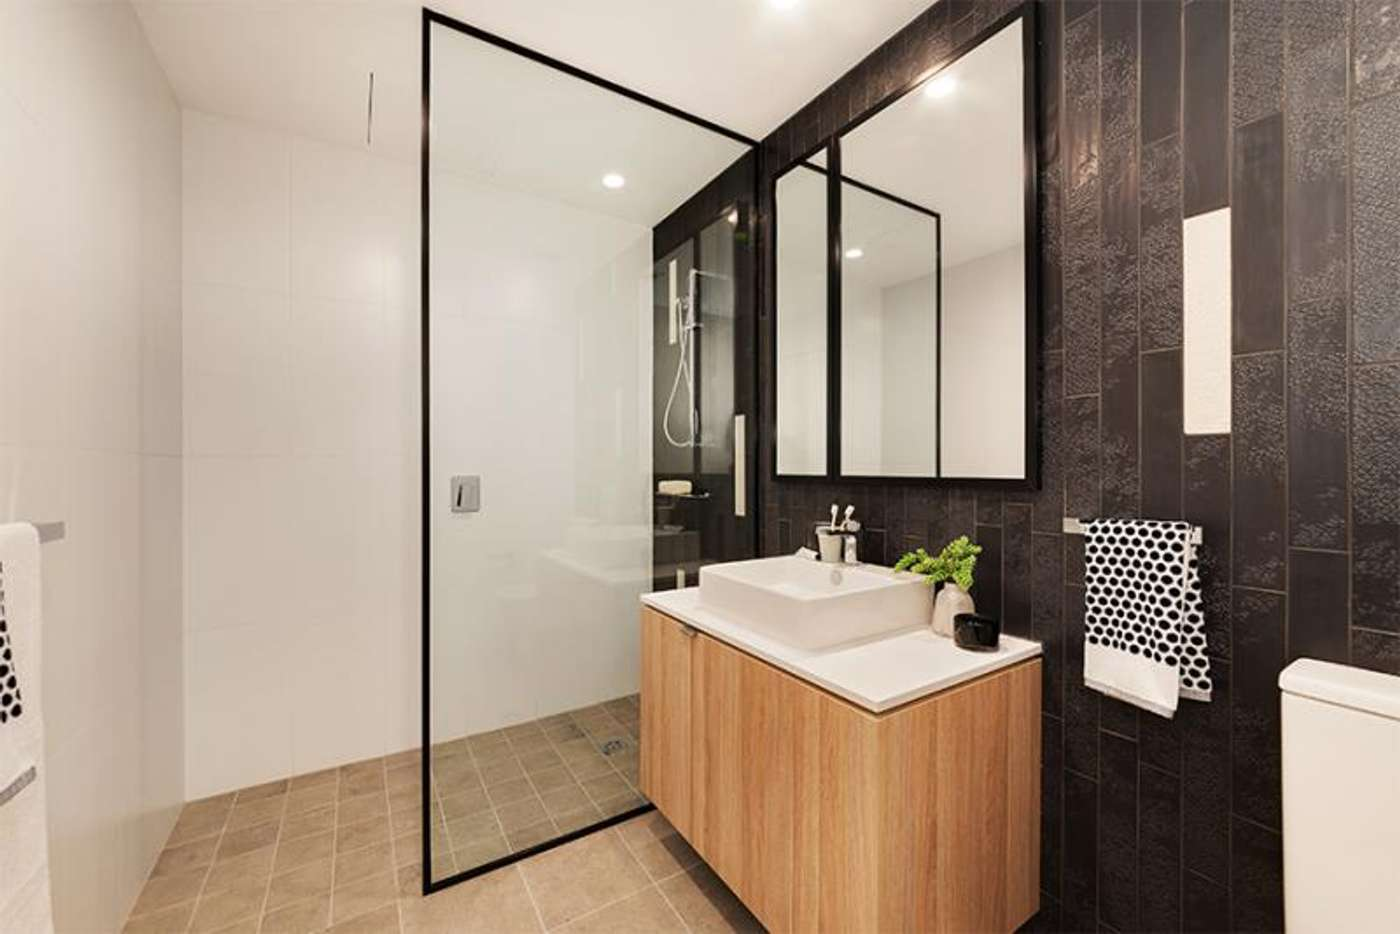 Fifth view of Homely apartment listing, H4, G07/86 Mobbs Lane, Eastwood NSW 2122